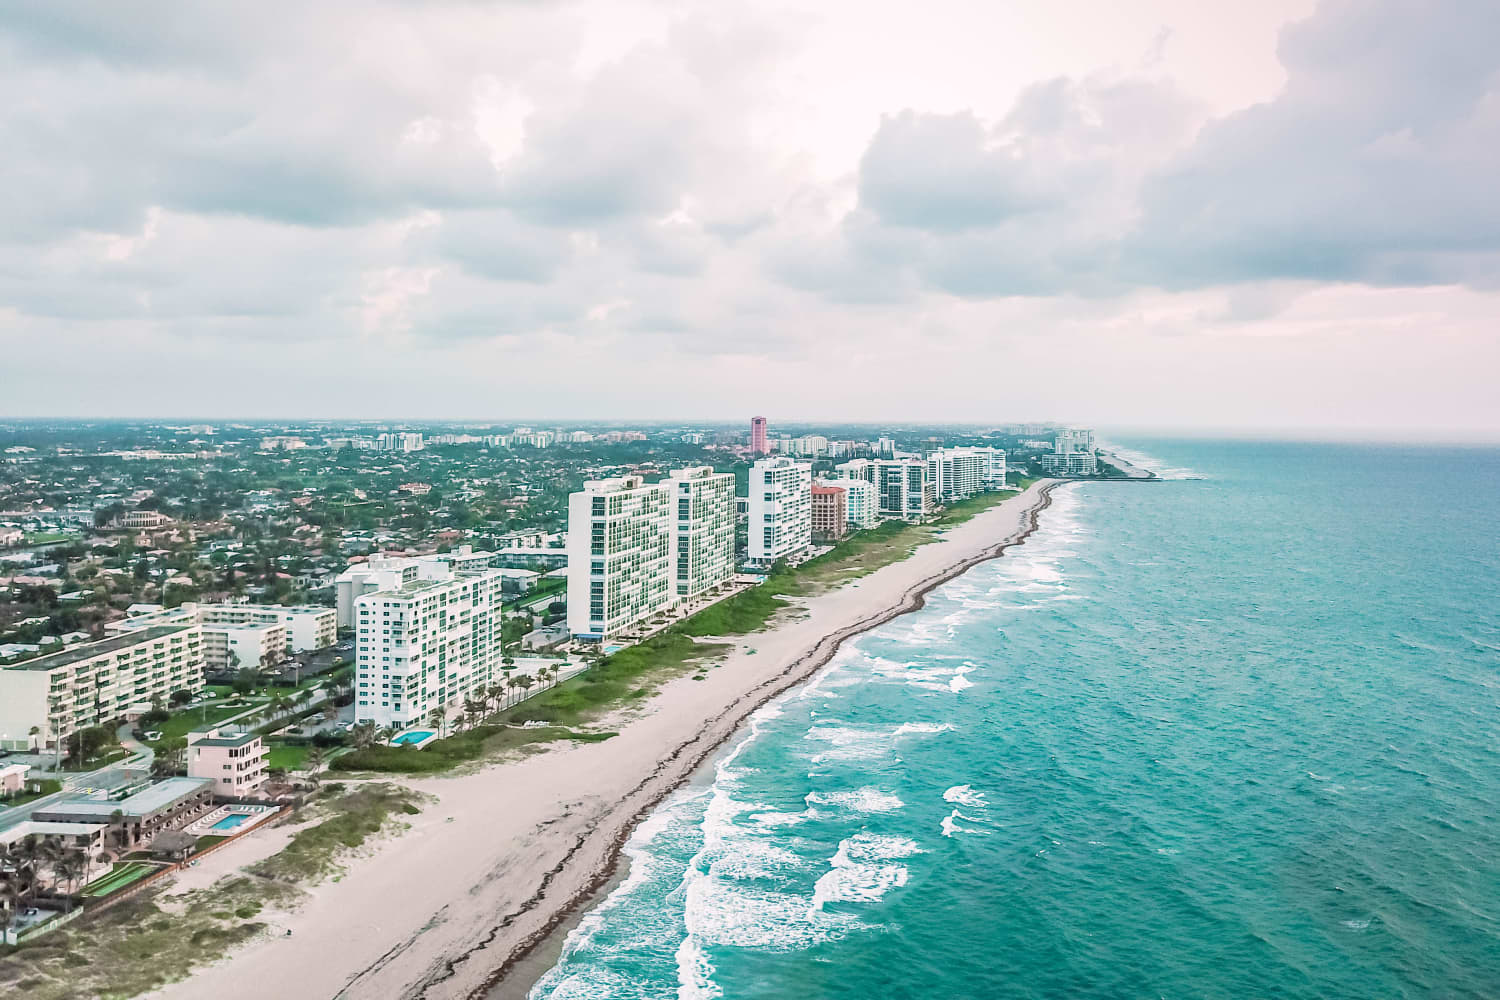 5 Fun, Affordable Cities to Move to If You Don't Want to Pay for Miami